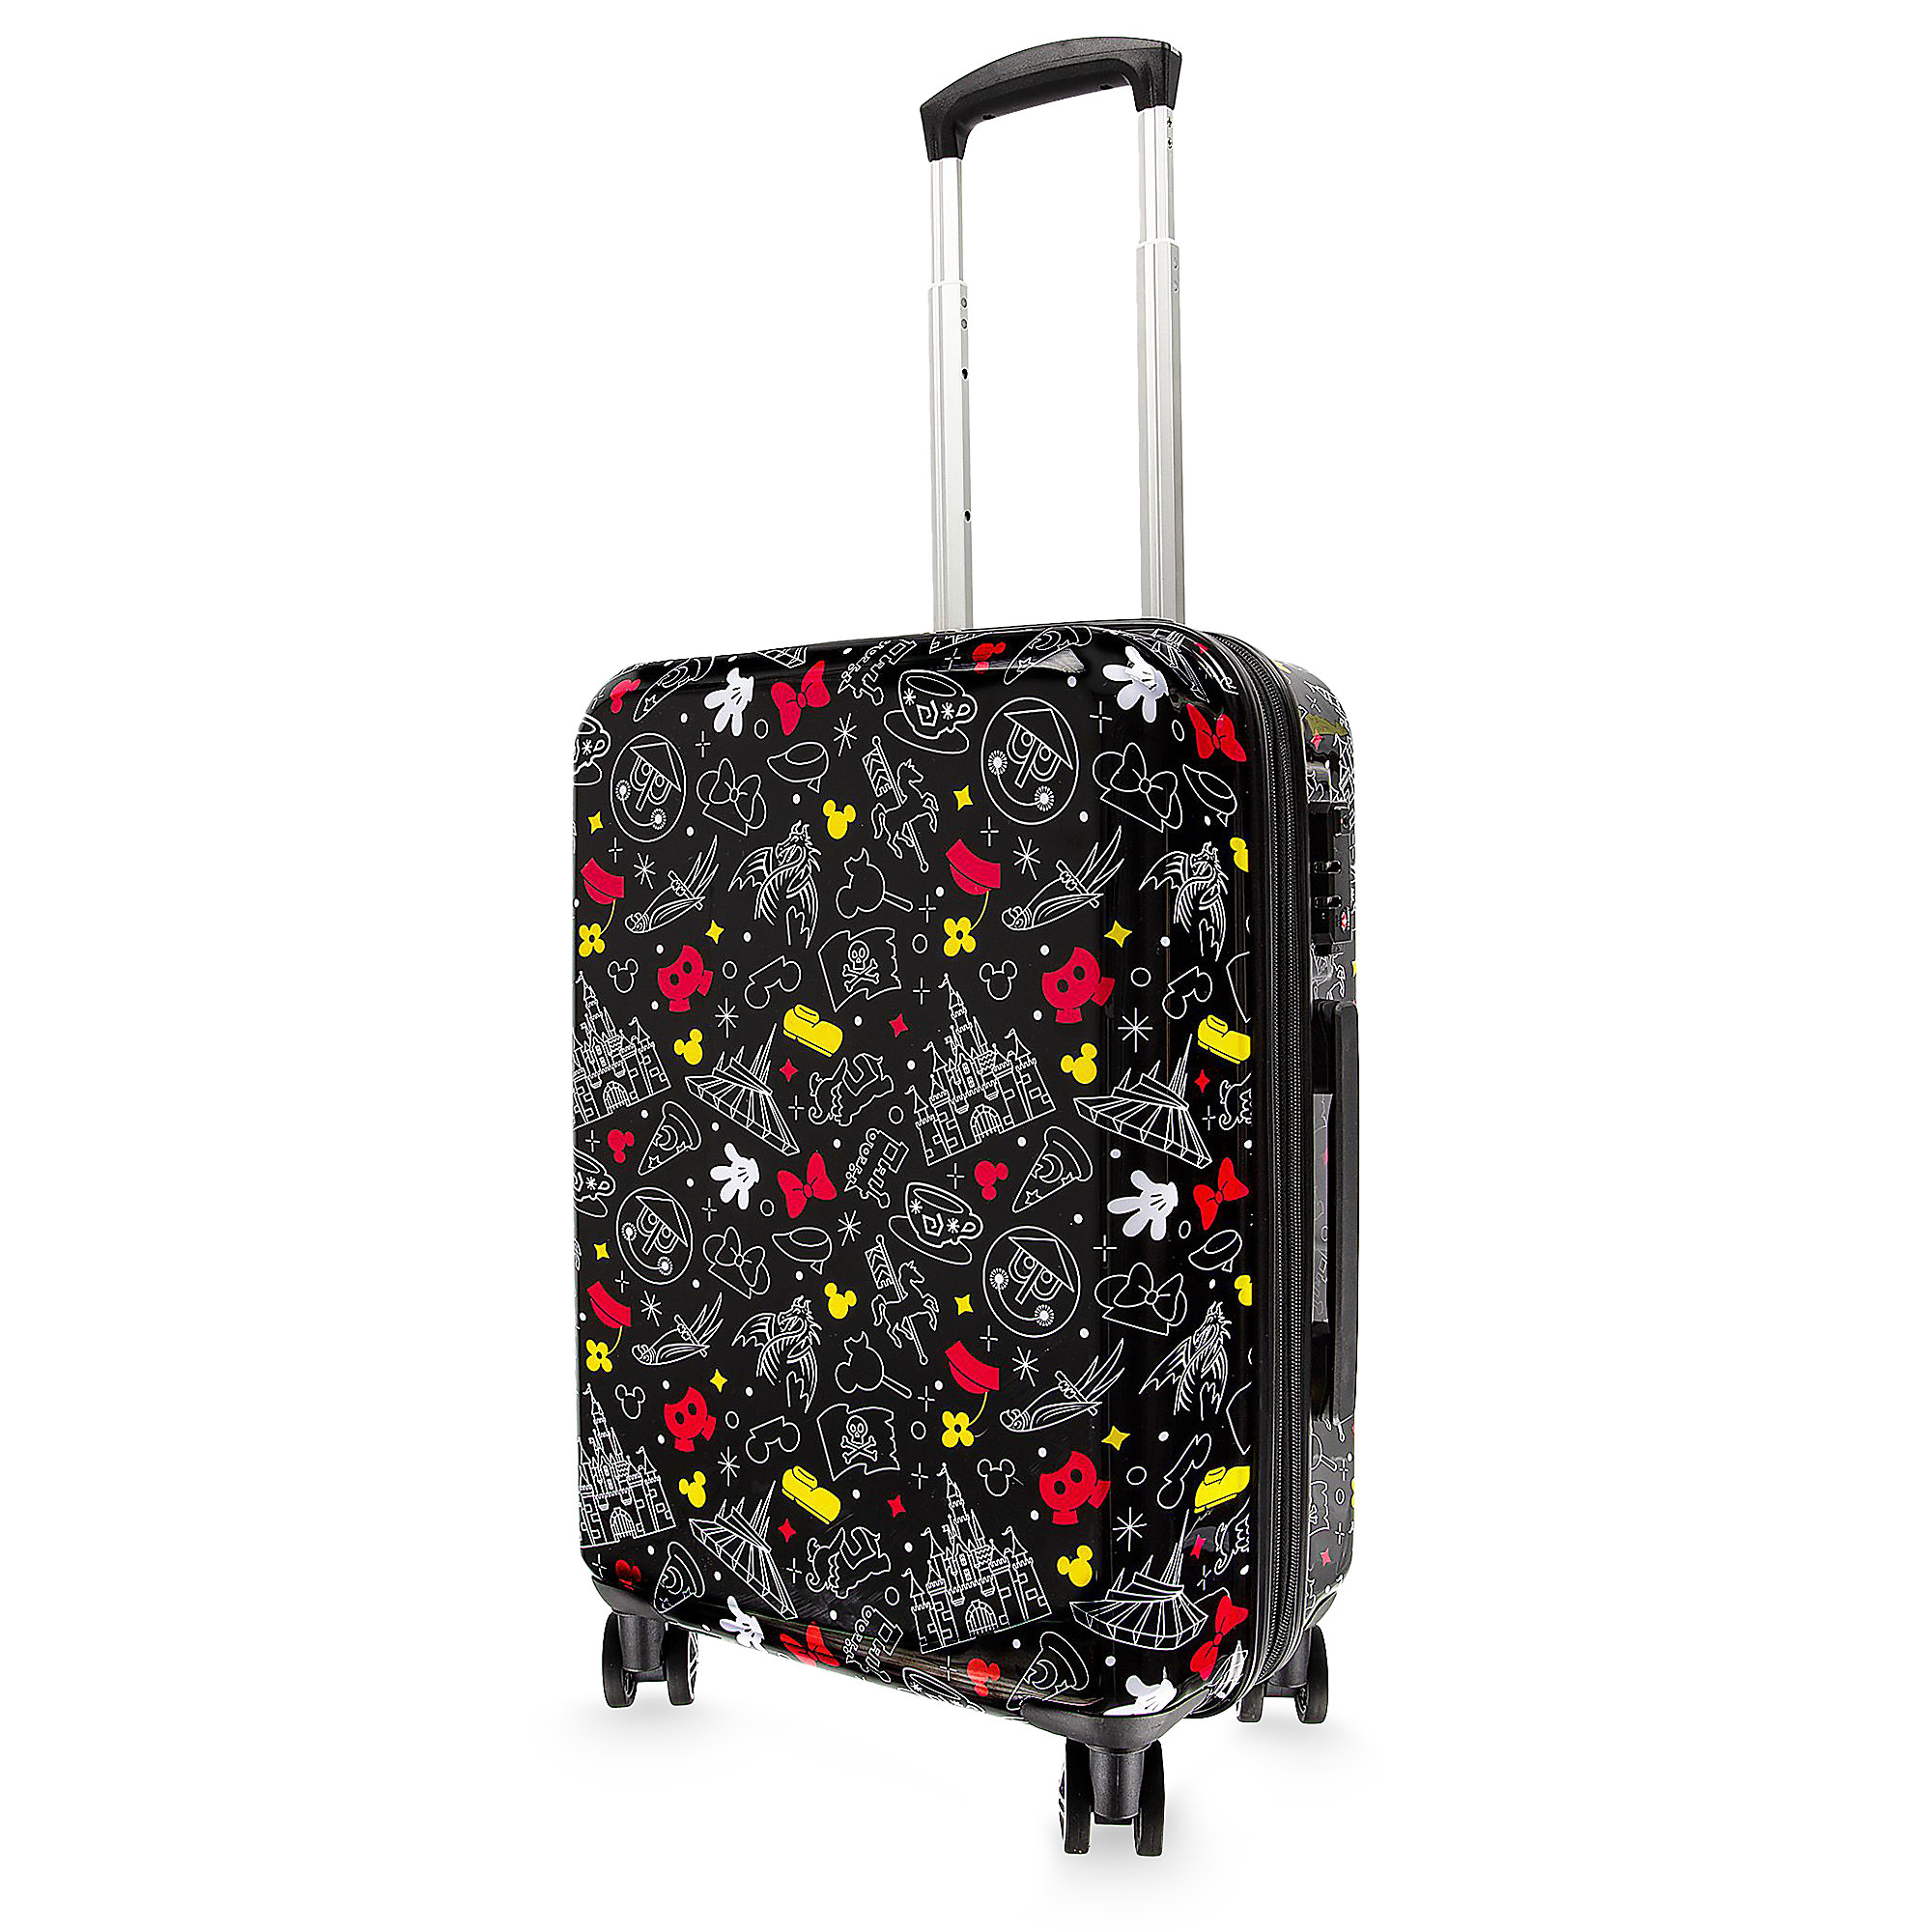 Disney Parks Rolling Luggage - Small - 21''